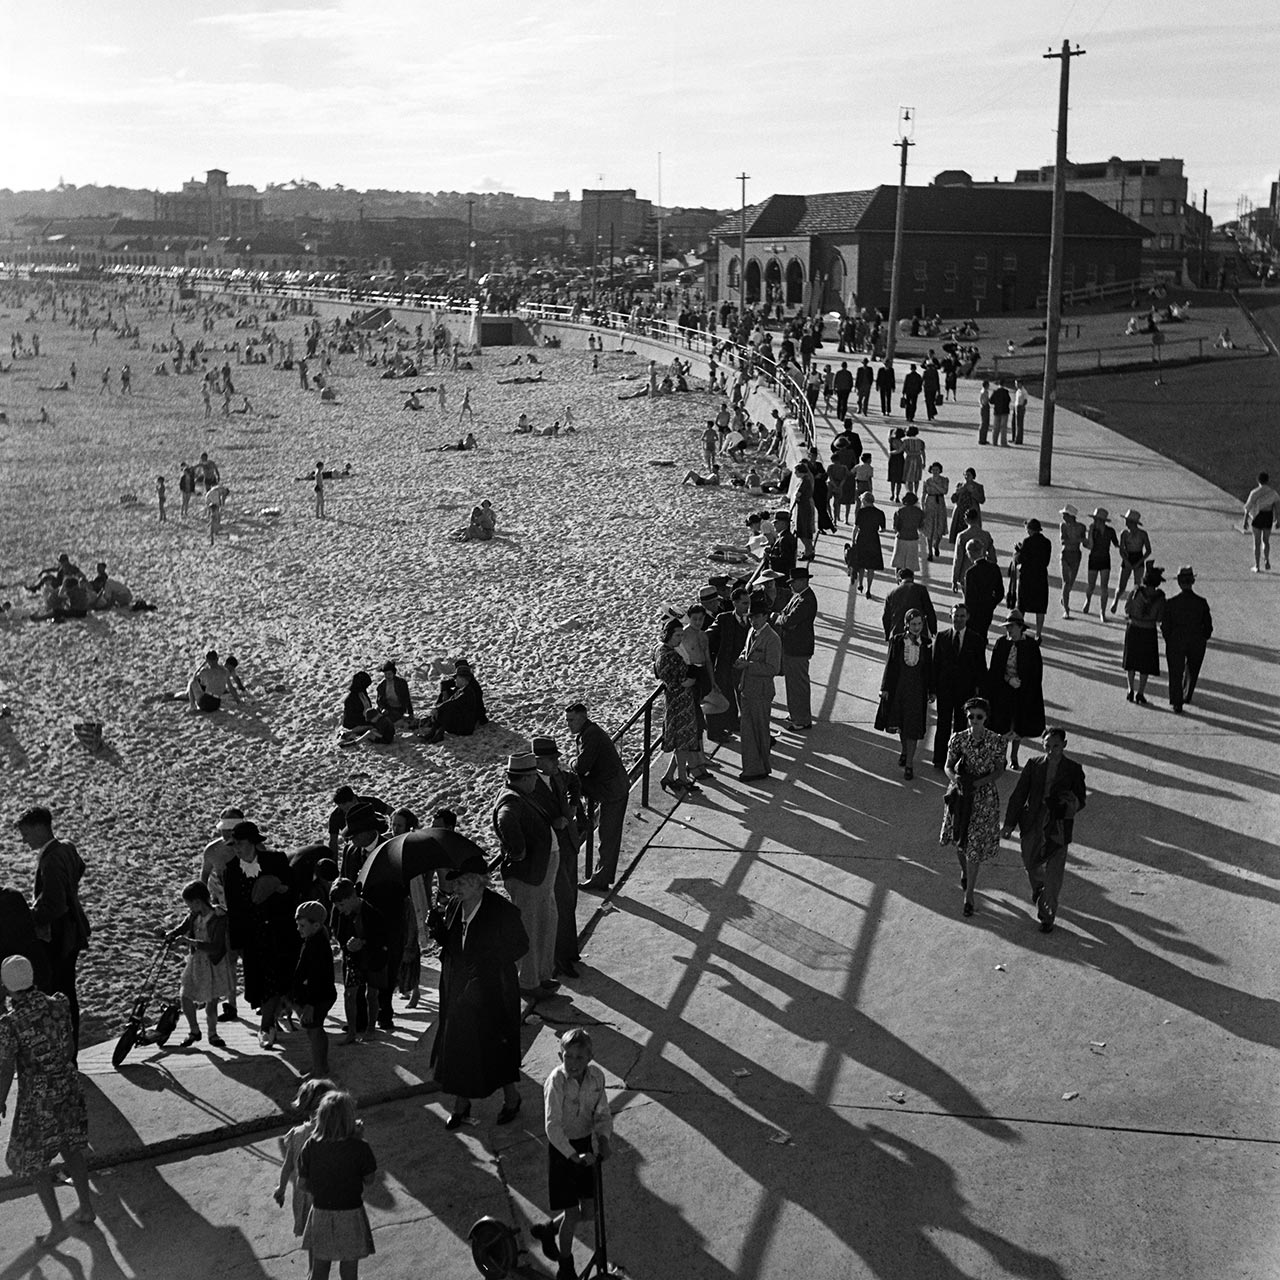 Bondi Beach promenade and North Bondi Surf Club, 12 November 1939. (Digital ID: a2391039)